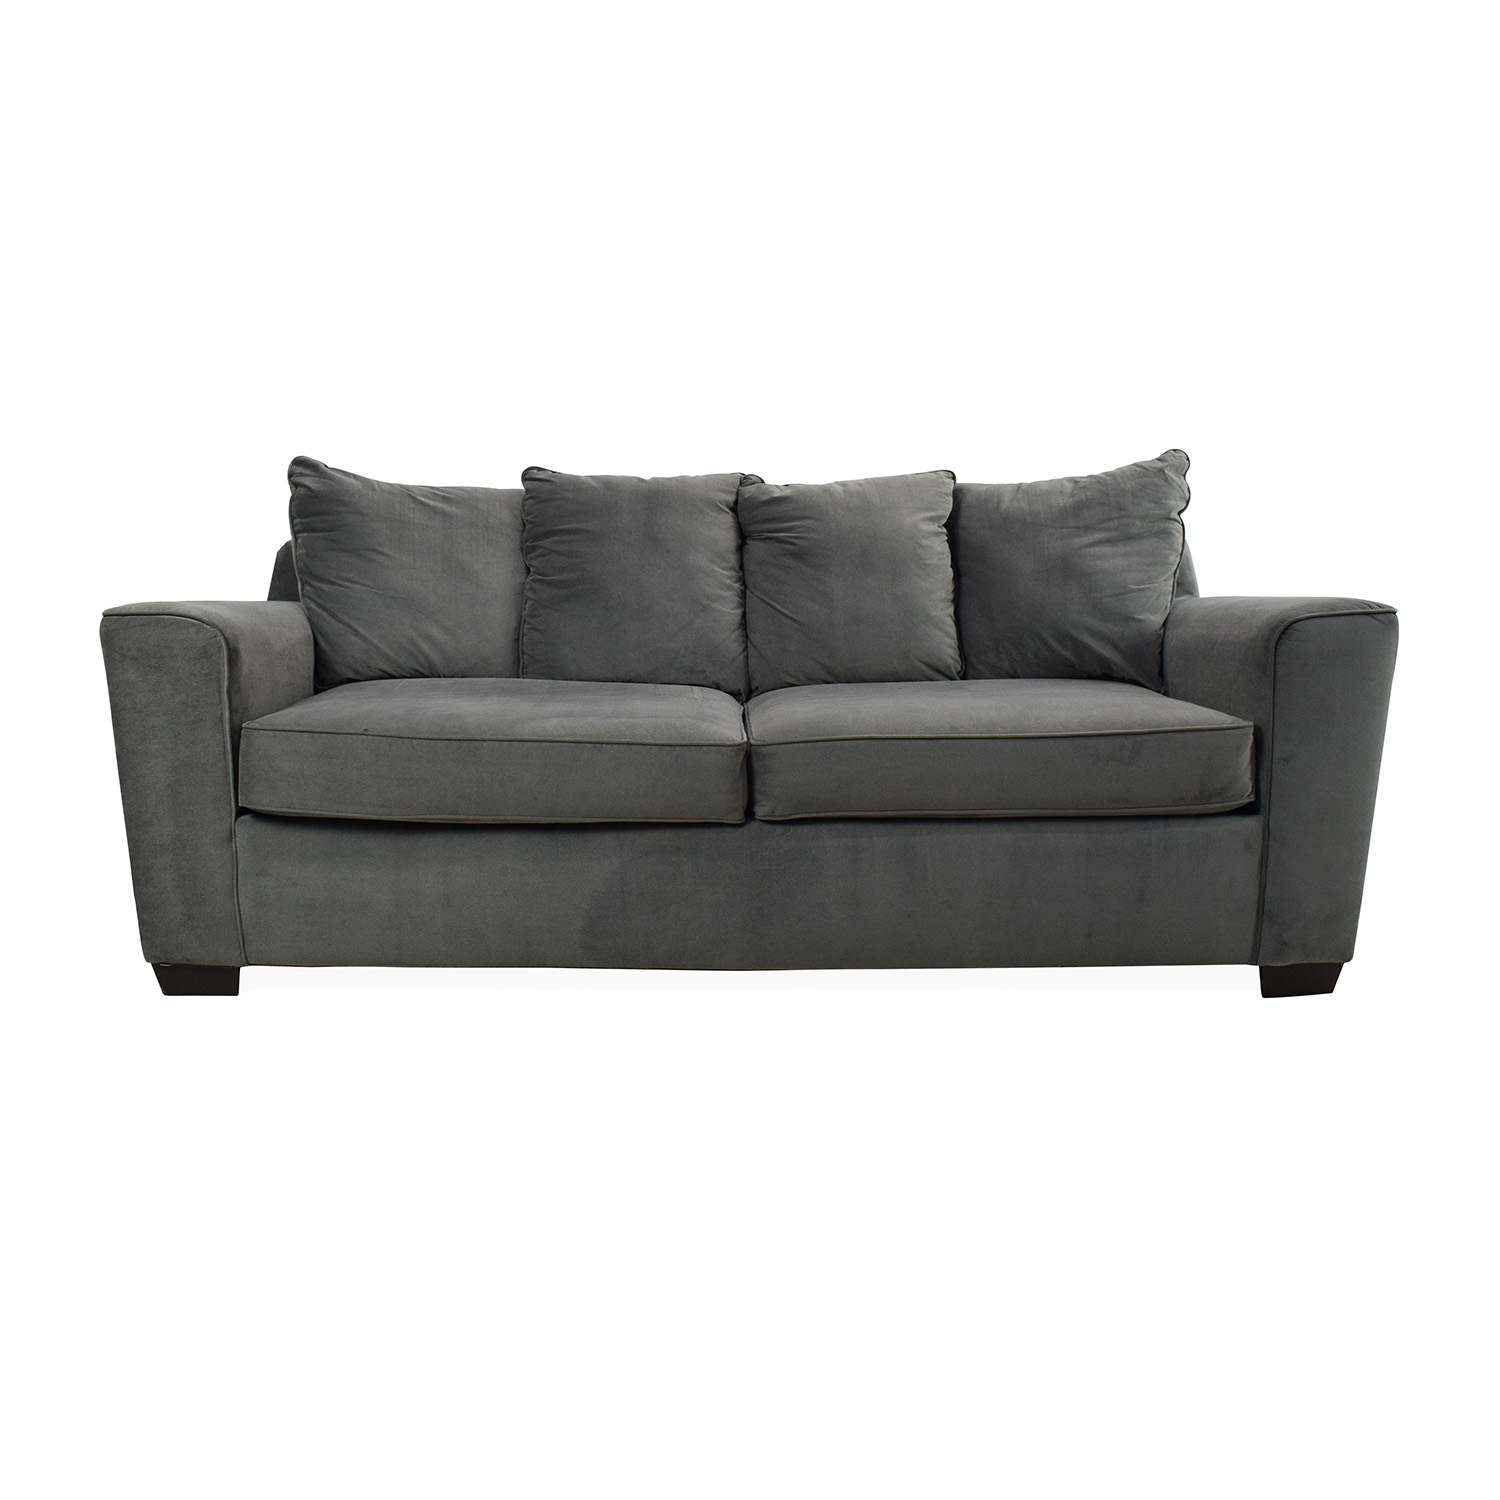 Jennifer Convertibles Plush Sofa / Sofas